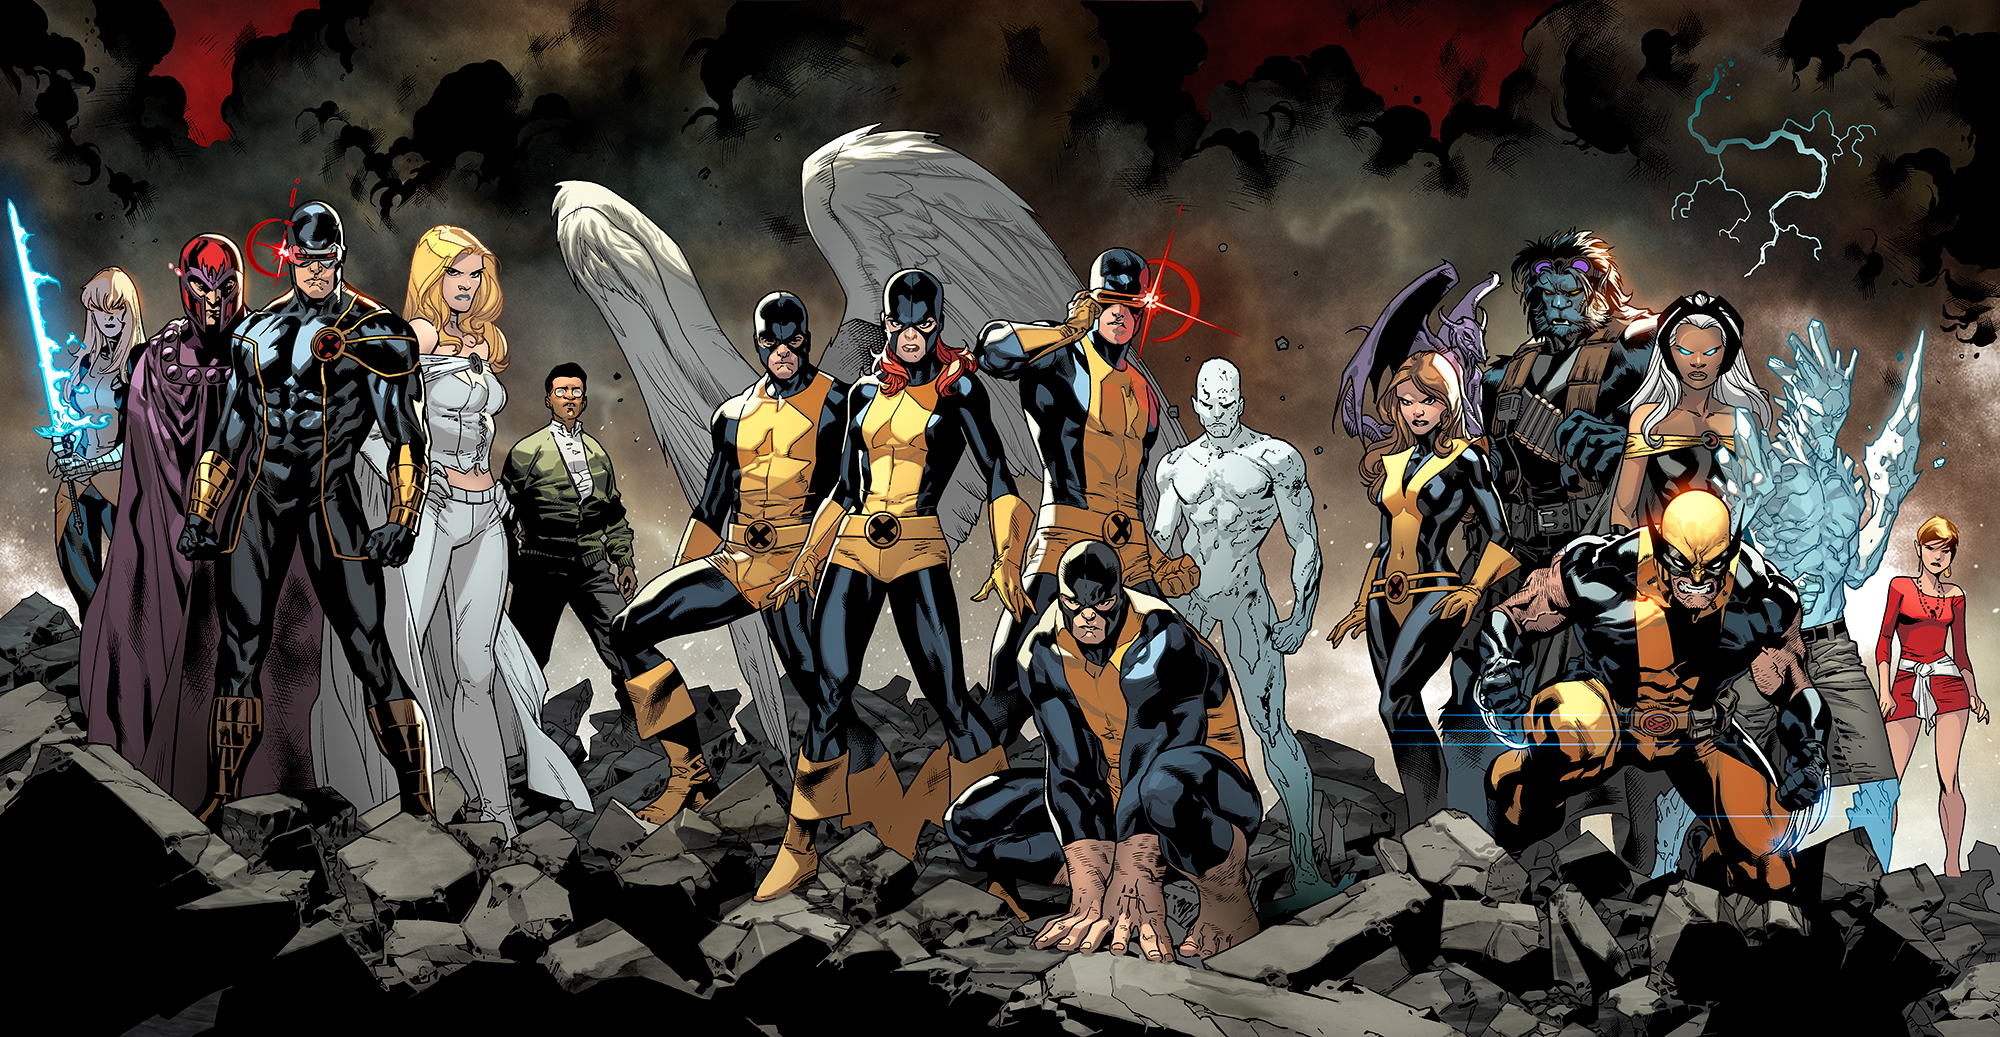 11 All New X-Men HD Wallpapers | Backgrounds - Wallpaper Abyss